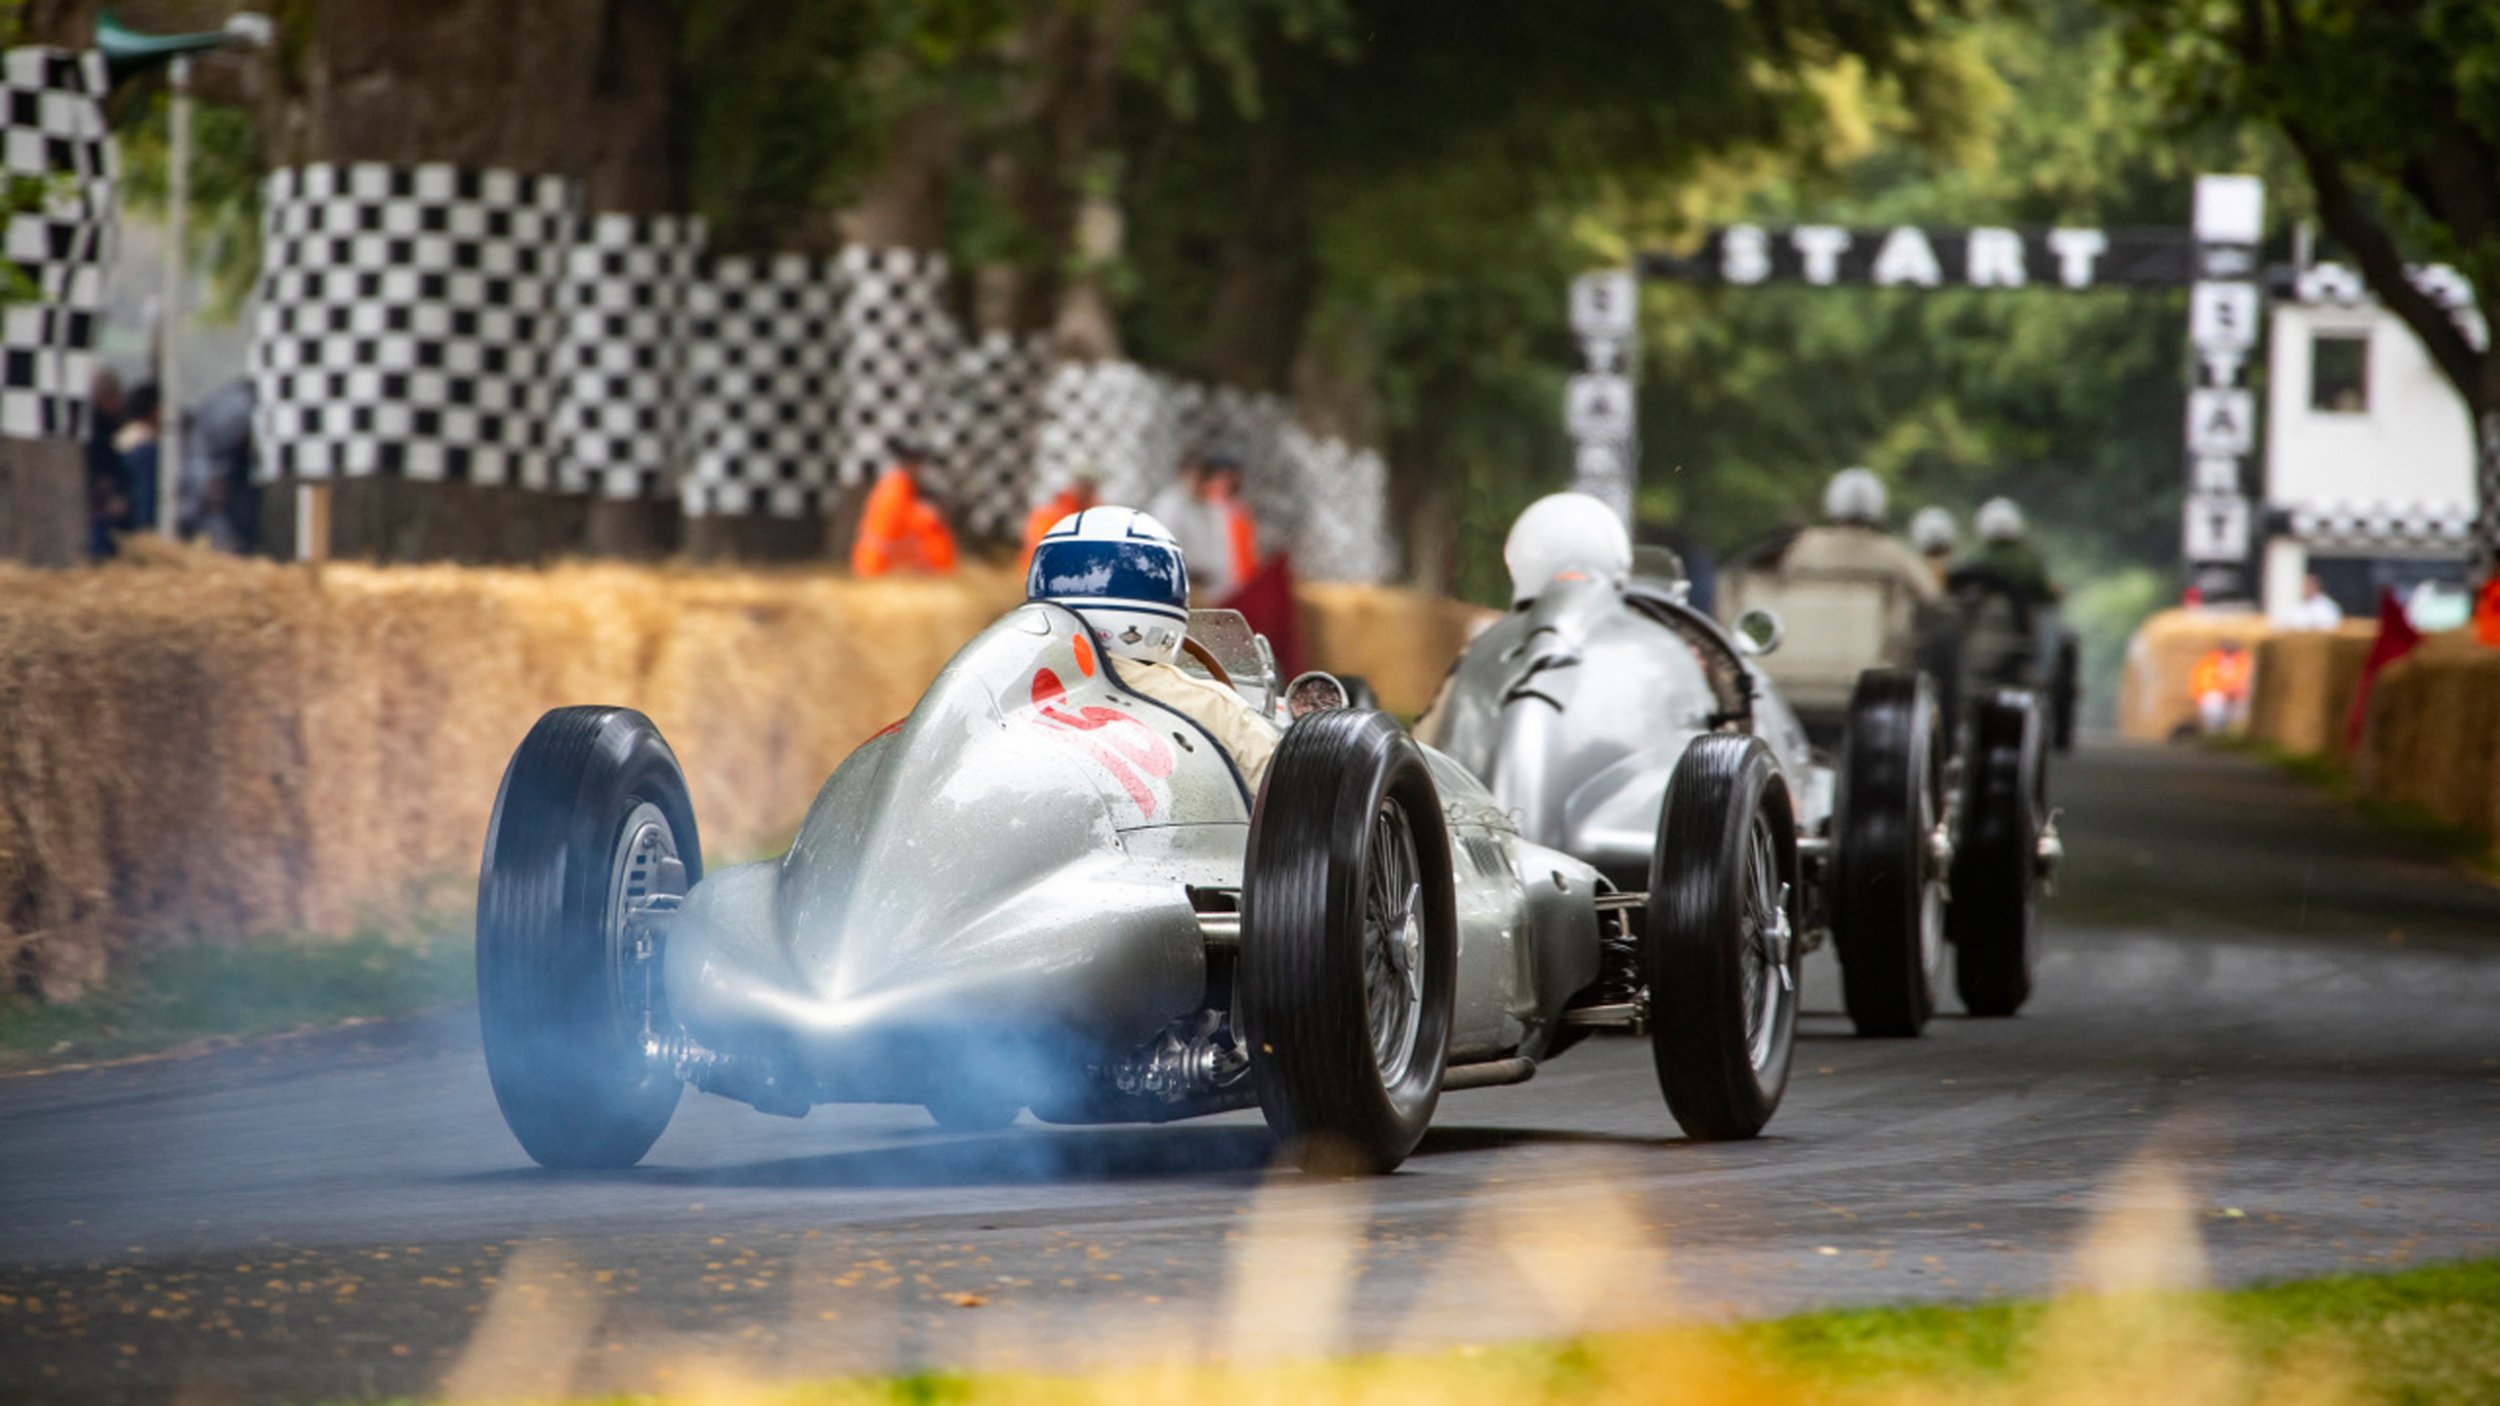 https://cloud.mb-lounge.com/files/HQ-Events/Classic/Oldtimer%20Events/event-calendar-goodwood-festival-of-speed-2560x1440.jpg